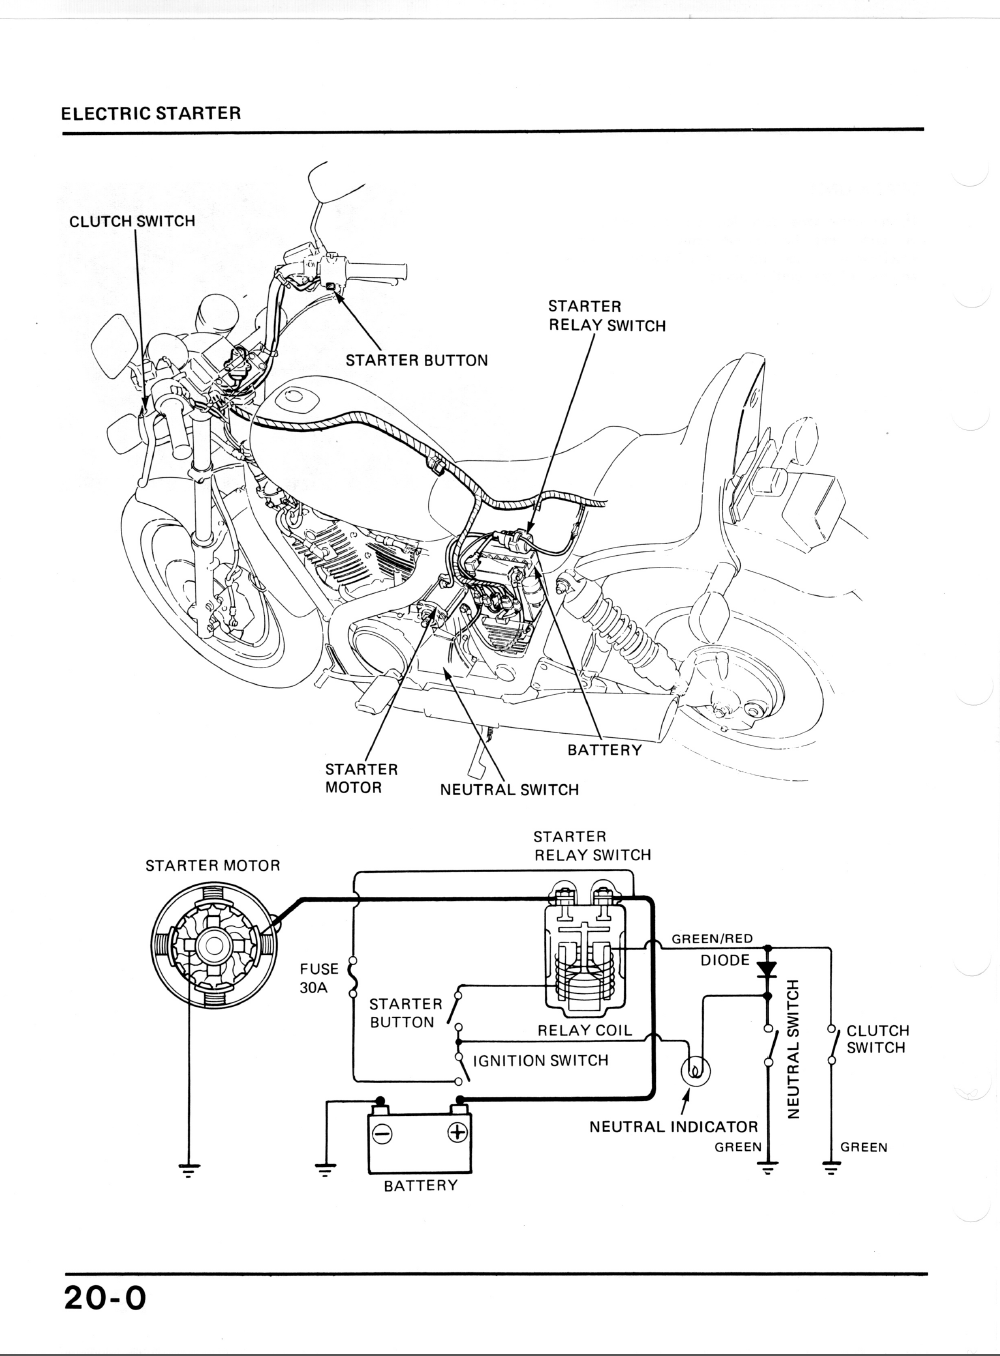 9266d1409799691 1984 honda shadow 700 electric stater 1984 honda shadow 700 1984 honda vt700c wiring diagram at bayanpartner.co